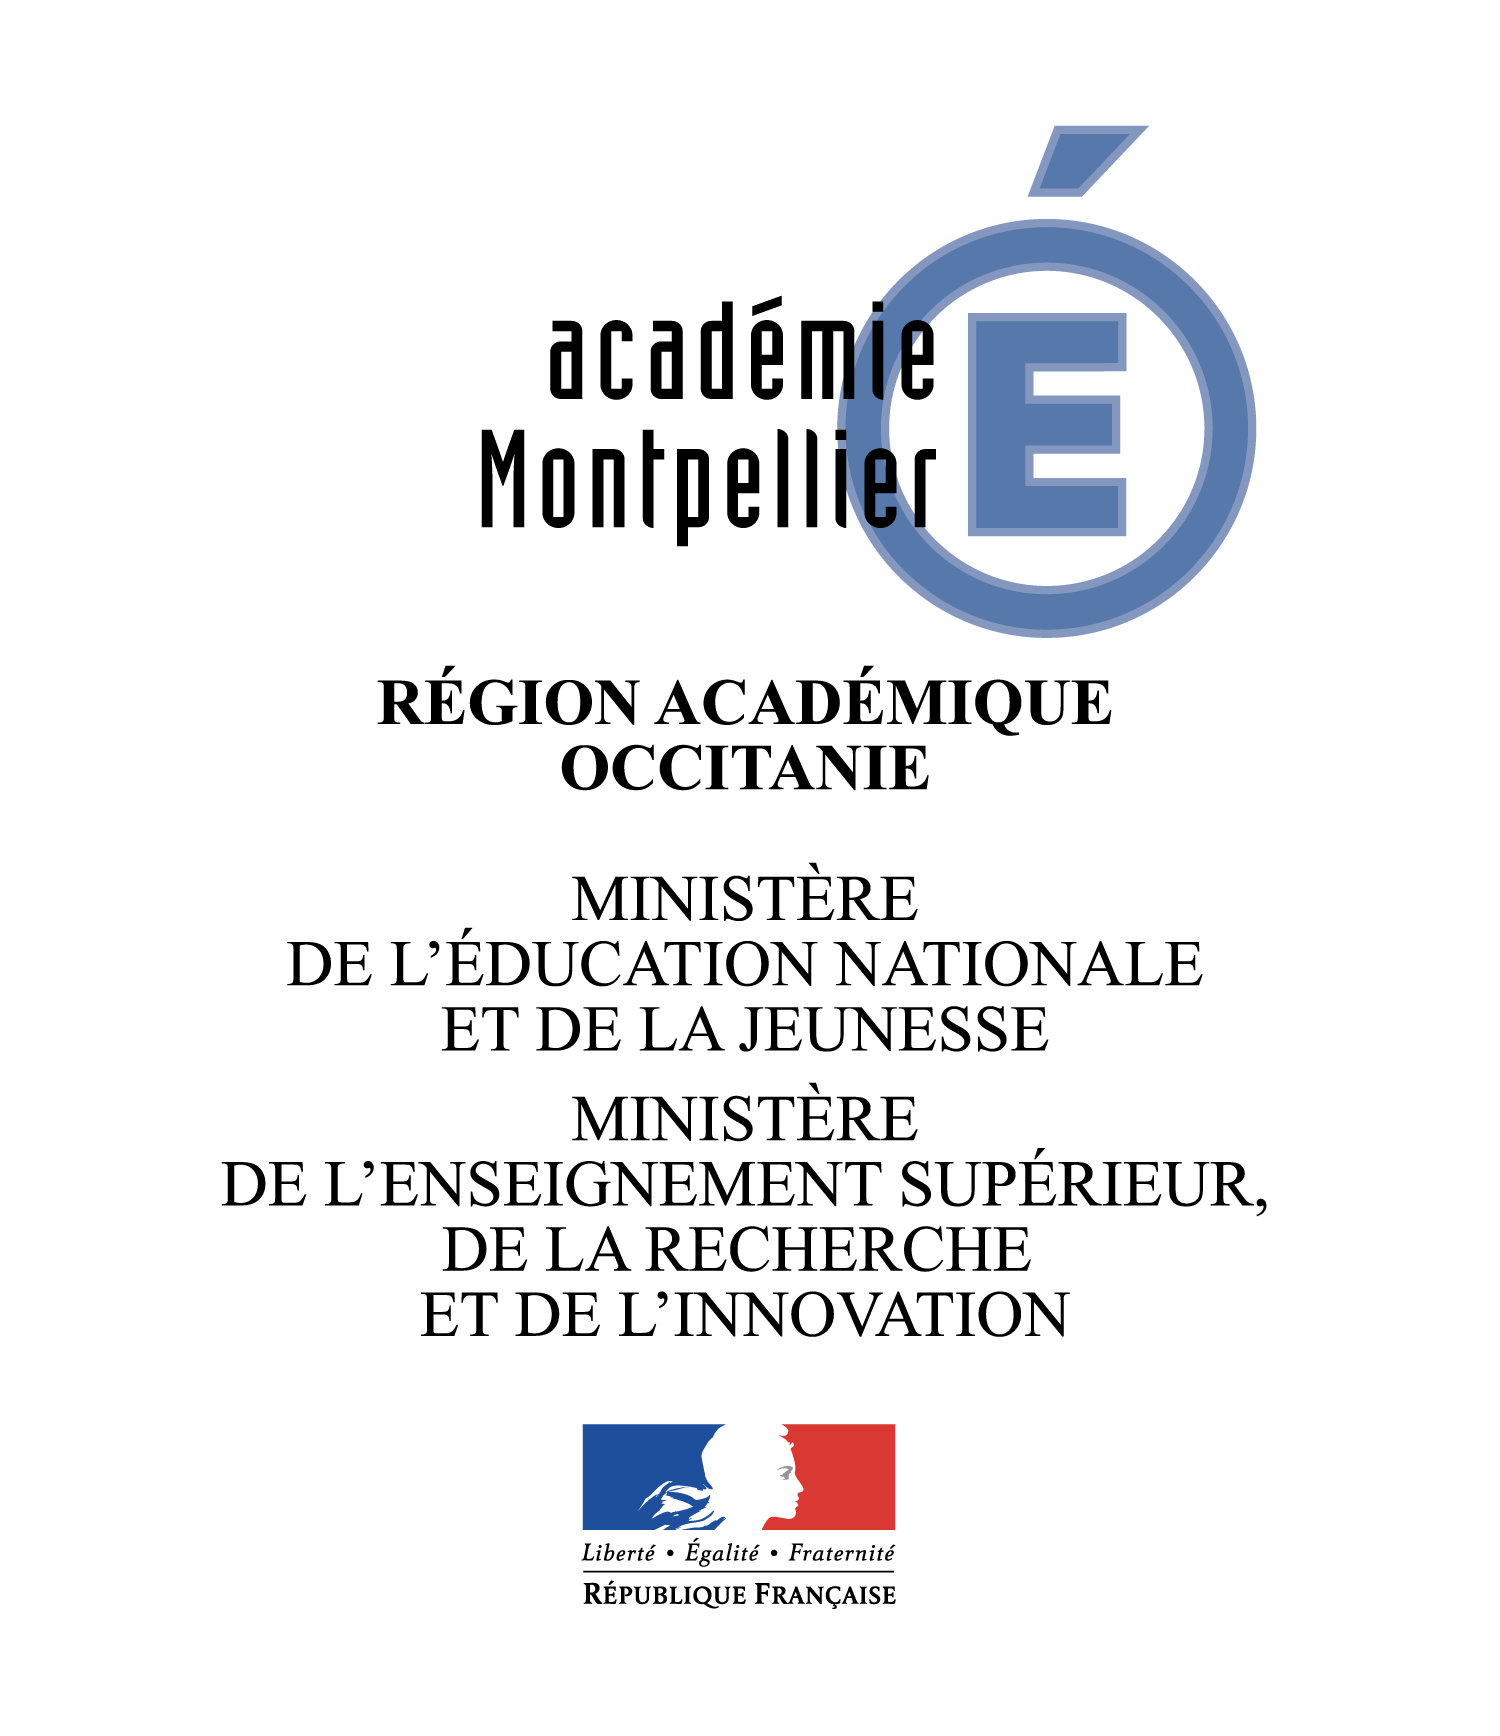 2018_logo_academie_Montpellier.png